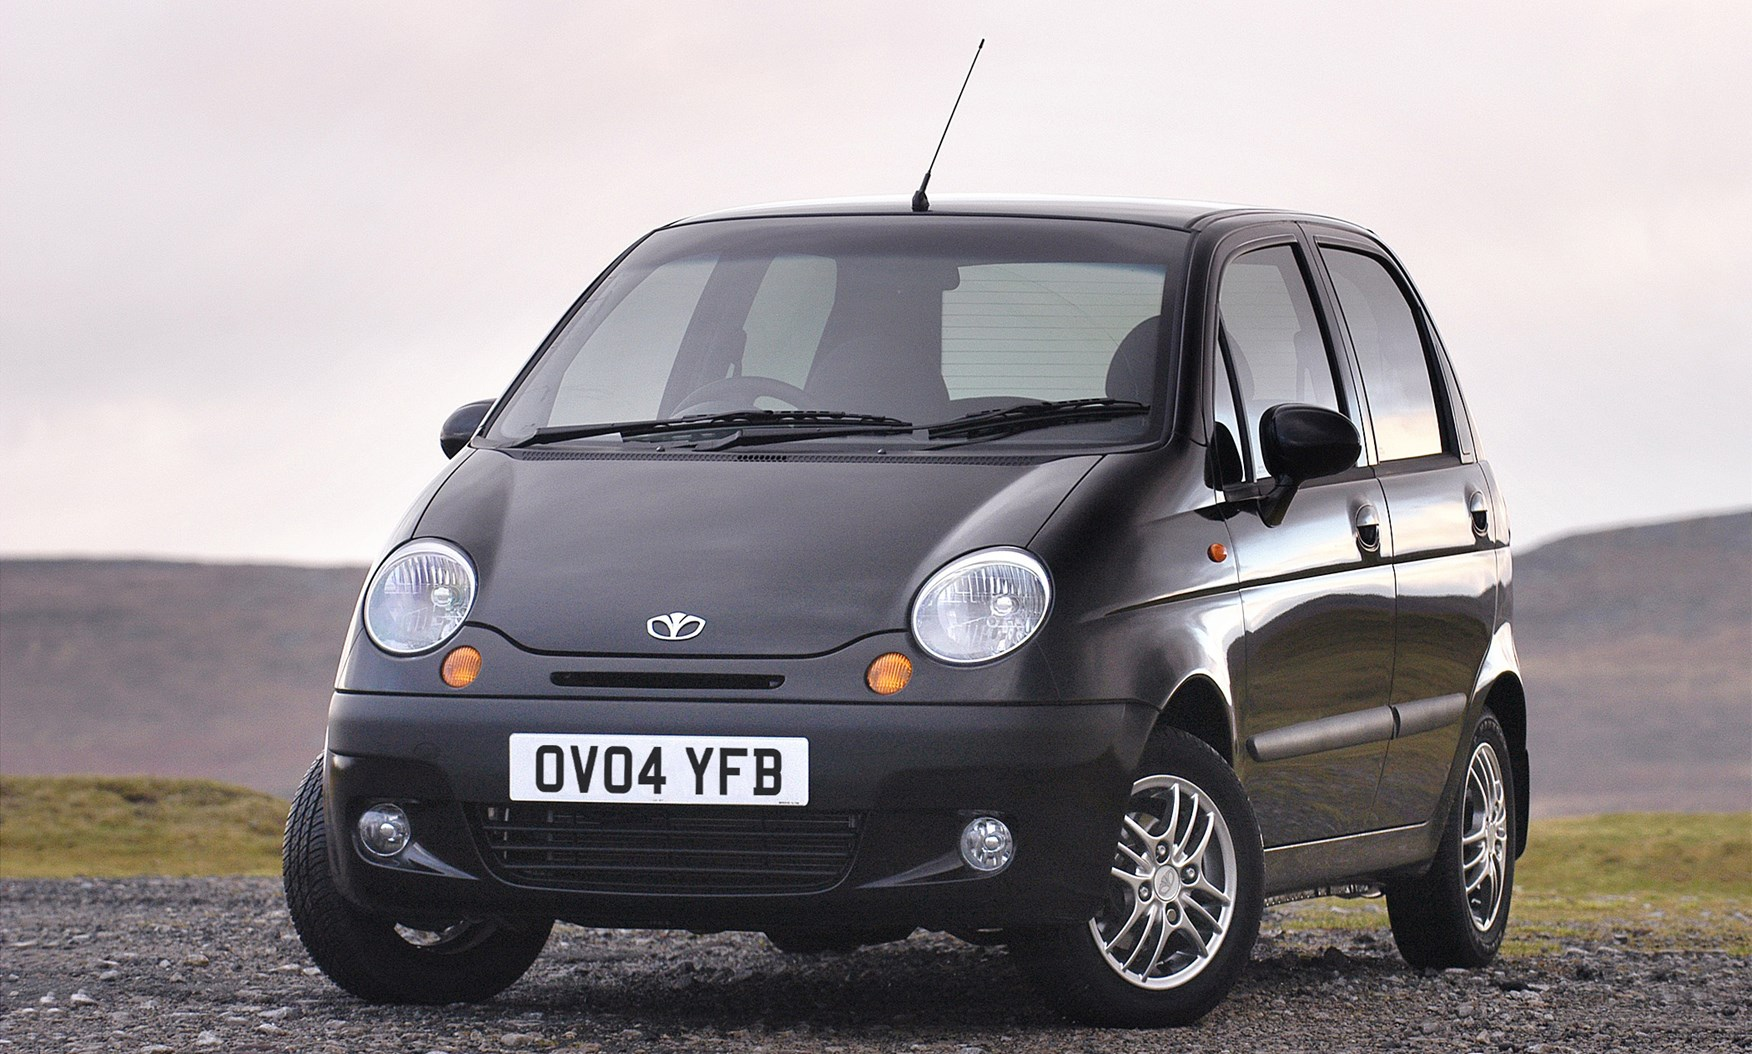 Honda Civic Coupe For Sale >> Daewoo Matiz Hatchback Review (1998 - 2005) | Parkers